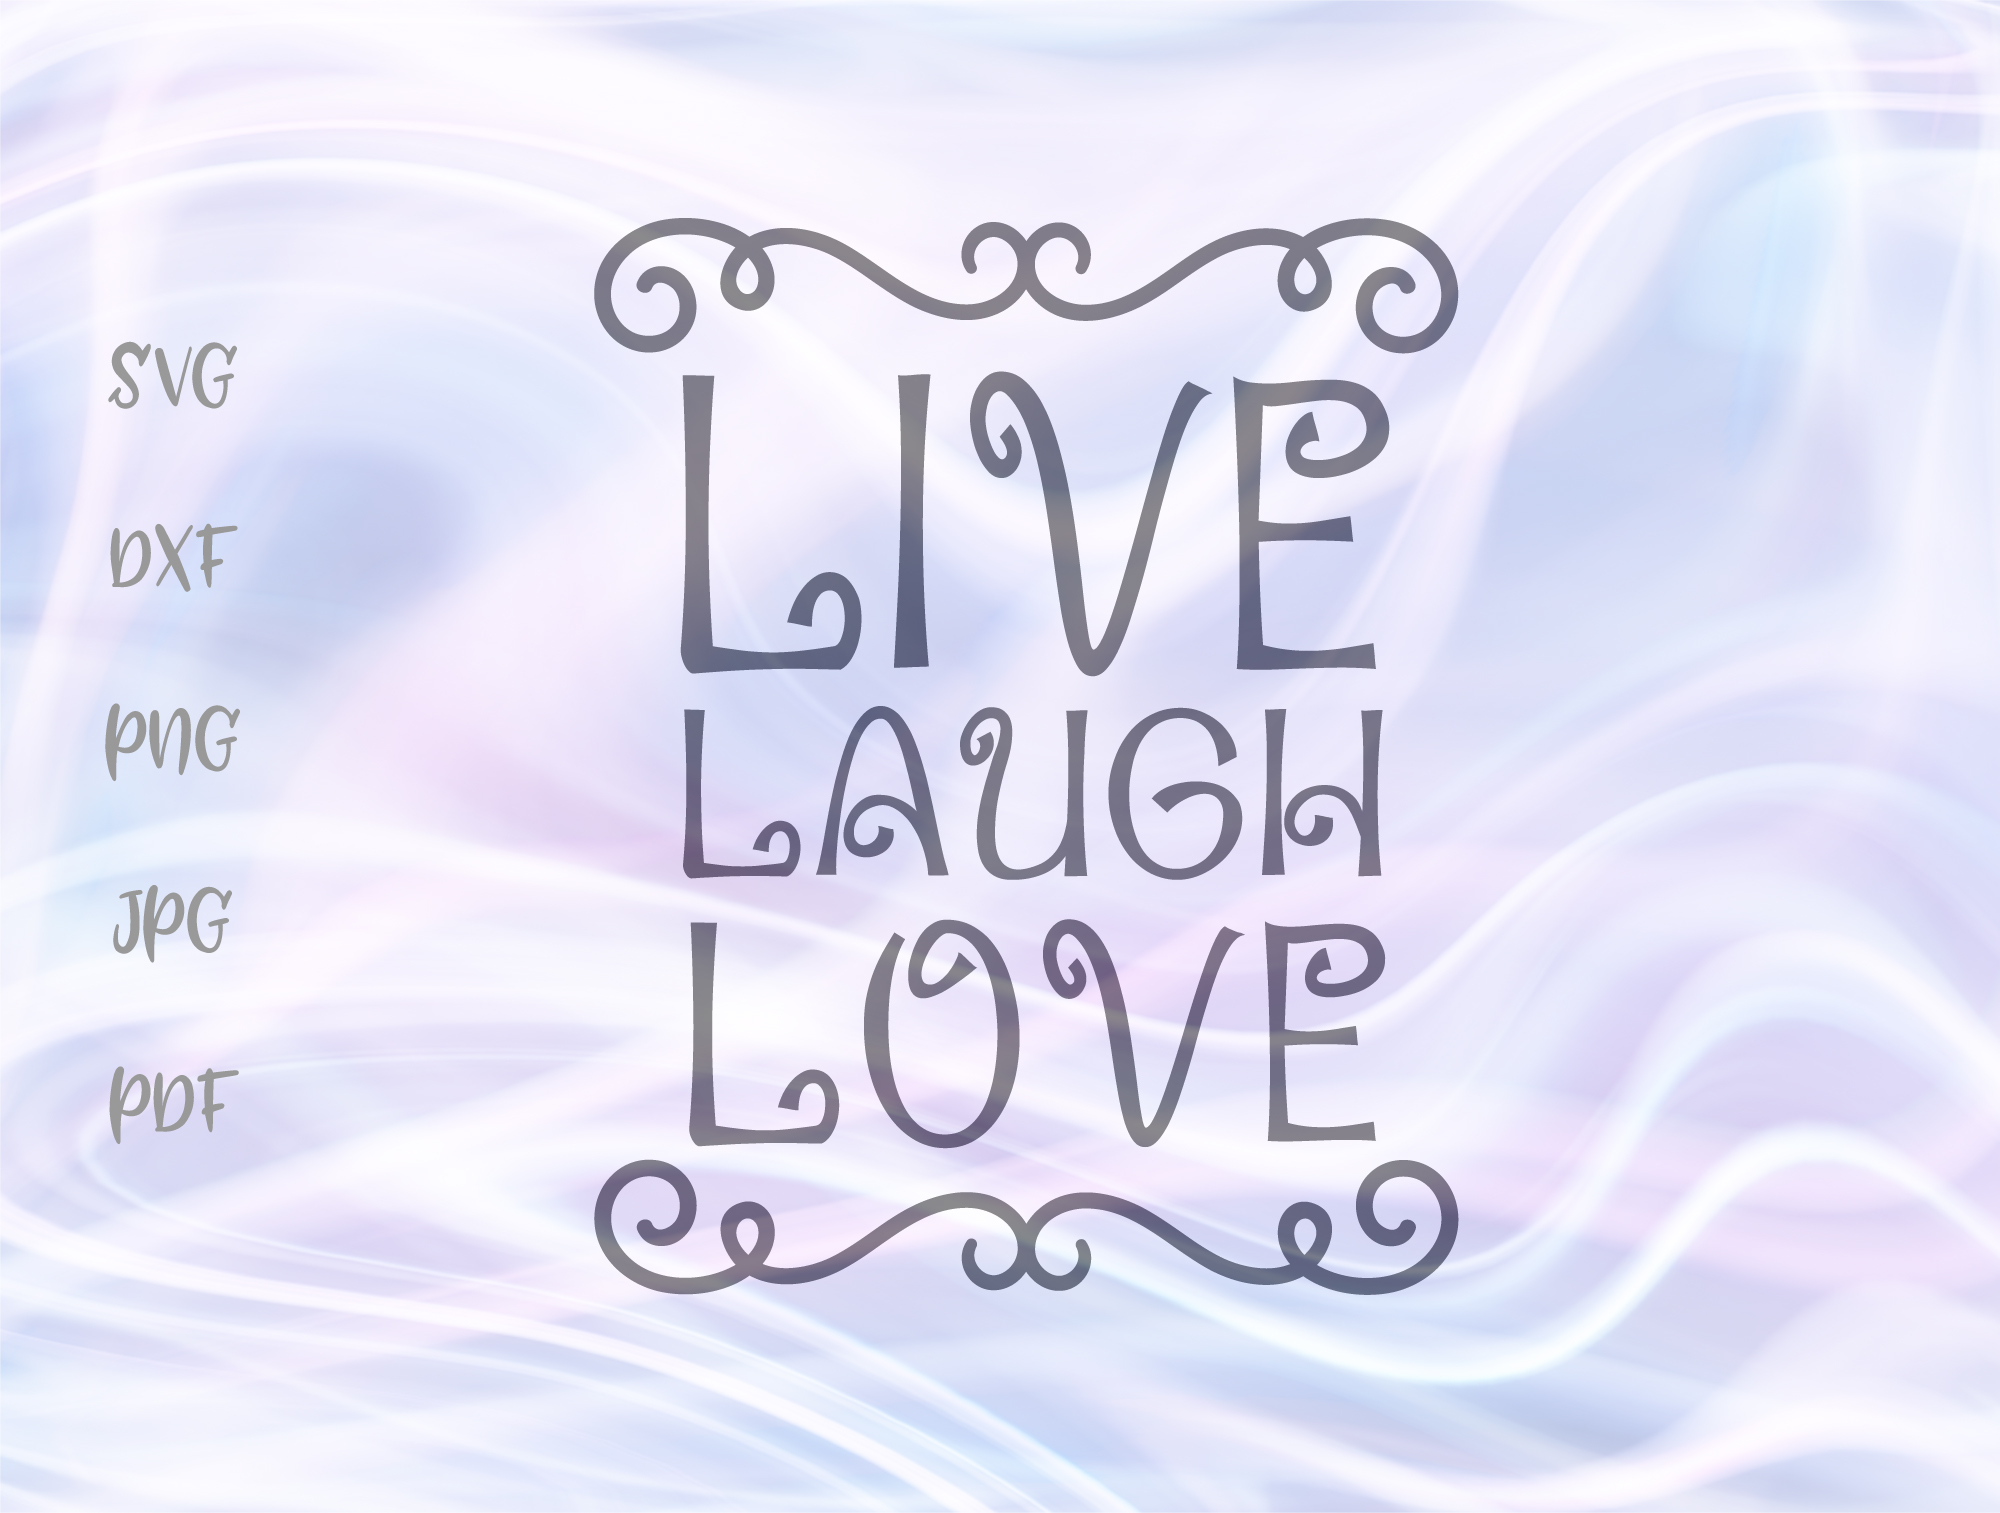 Download Free Live Laugh Love Inspirational Sign Graphic By Digitals By Hanna for Cricut Explore, Silhouette and other cutting machines.